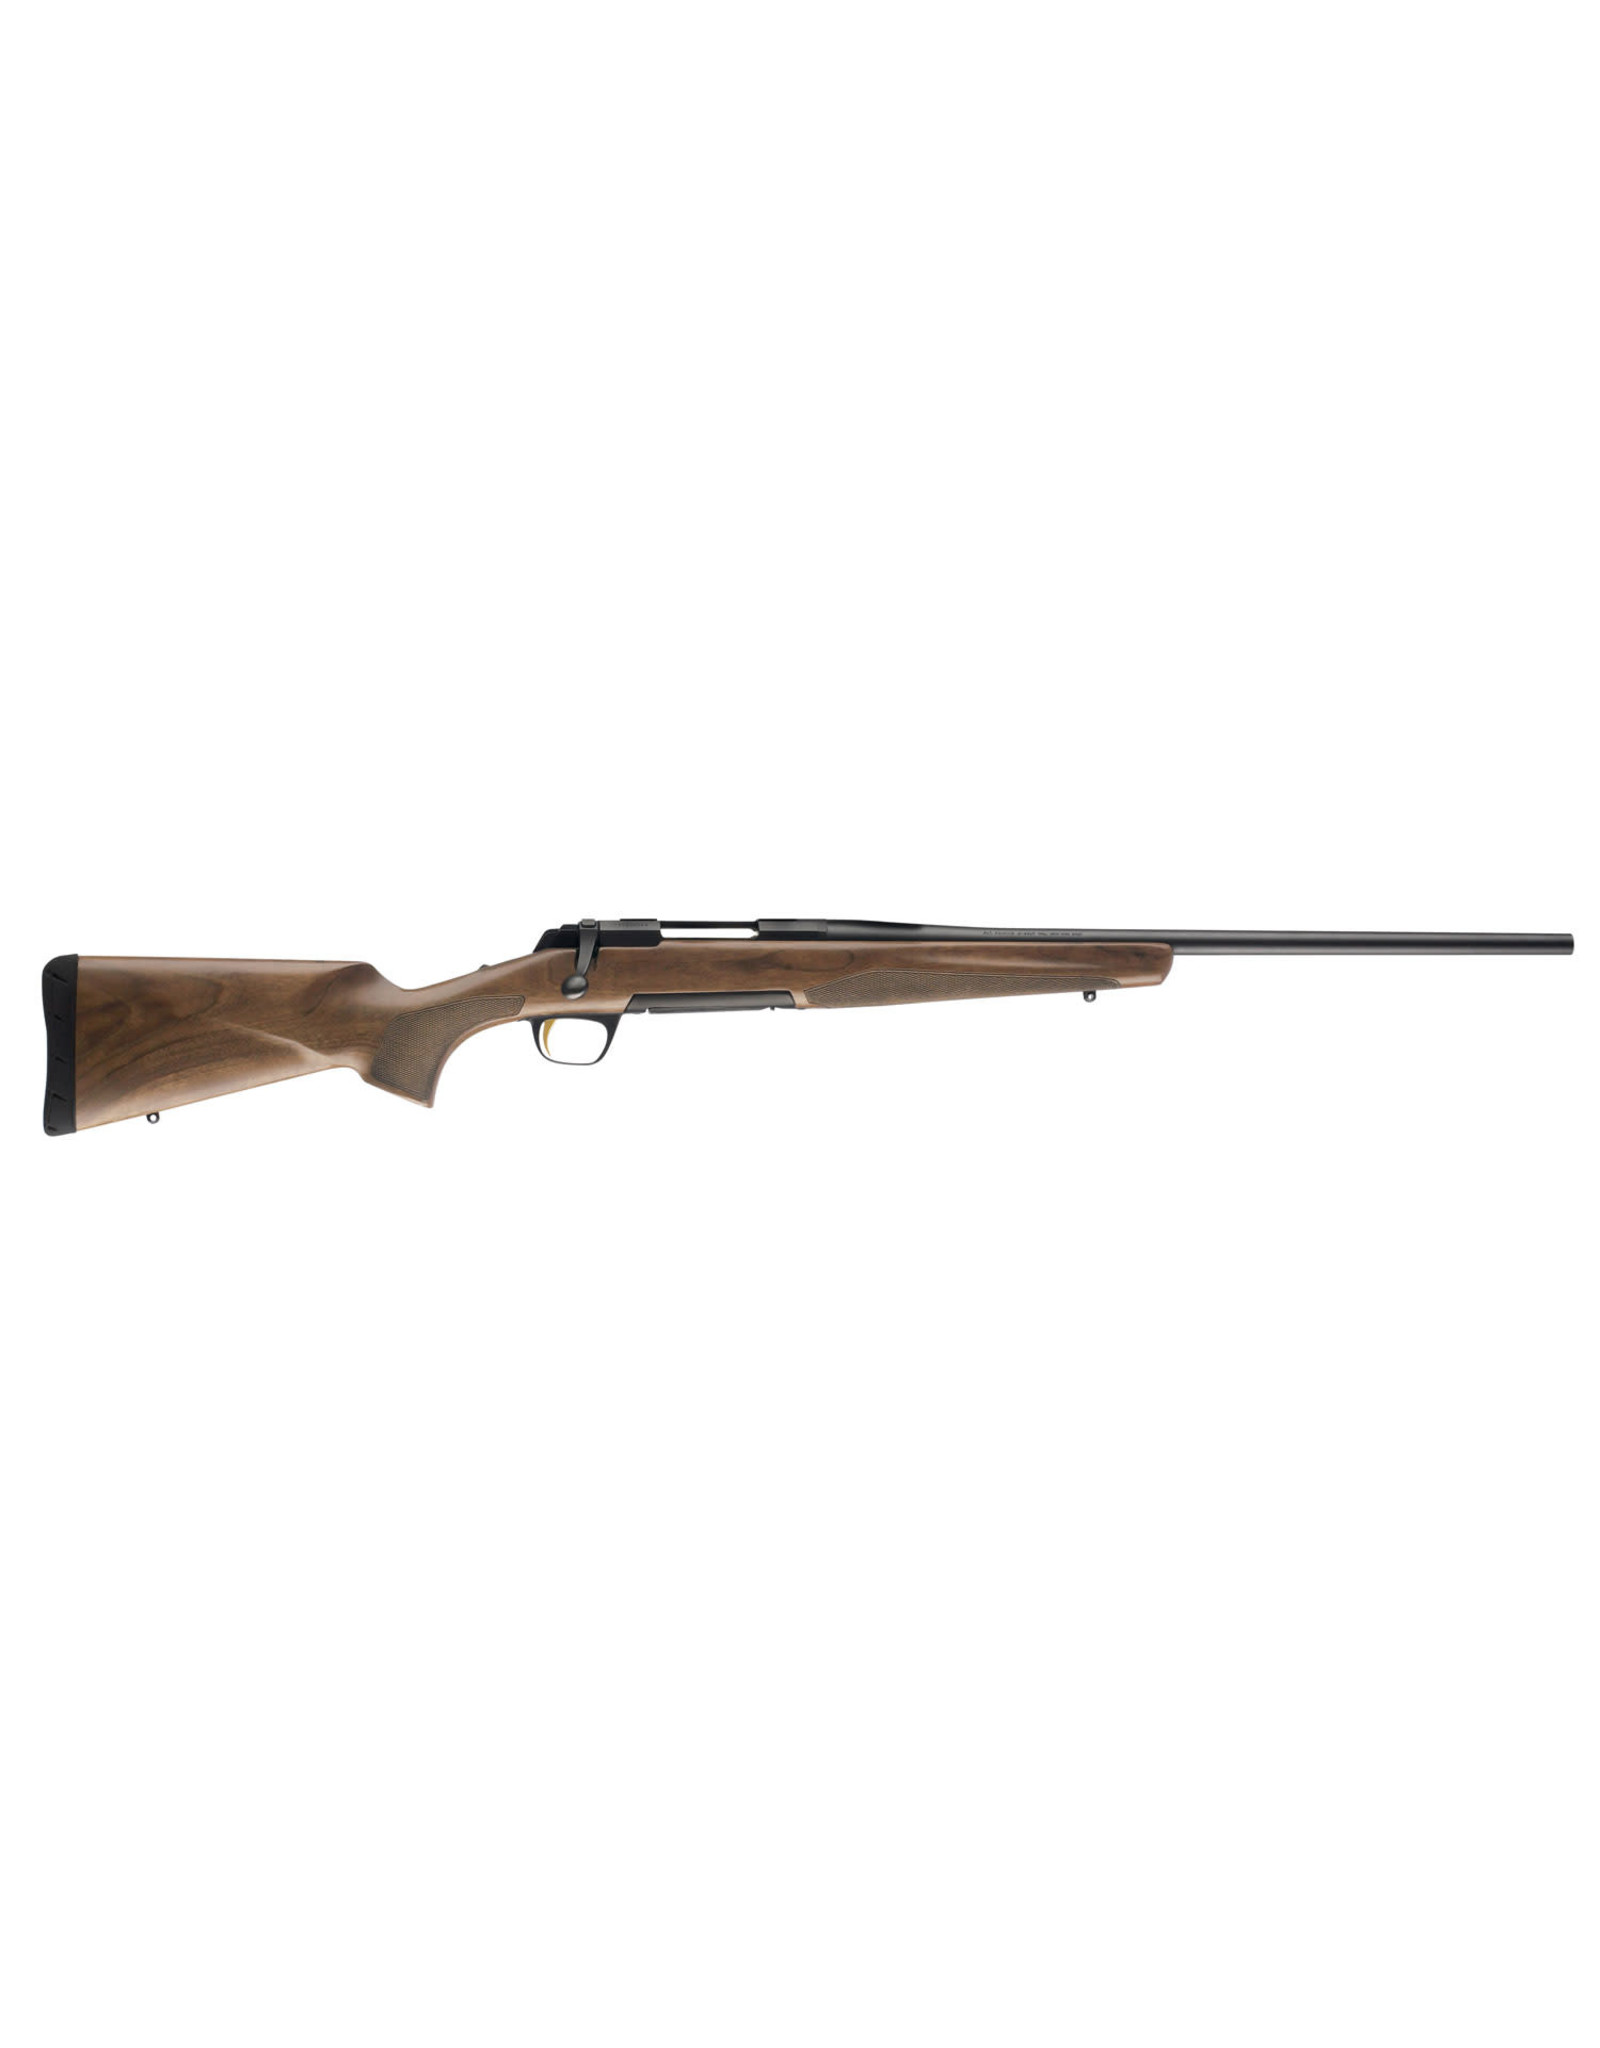 "Browning Browning Micro Midas .22-250 Rem 20"" bbl 4+1 Round"